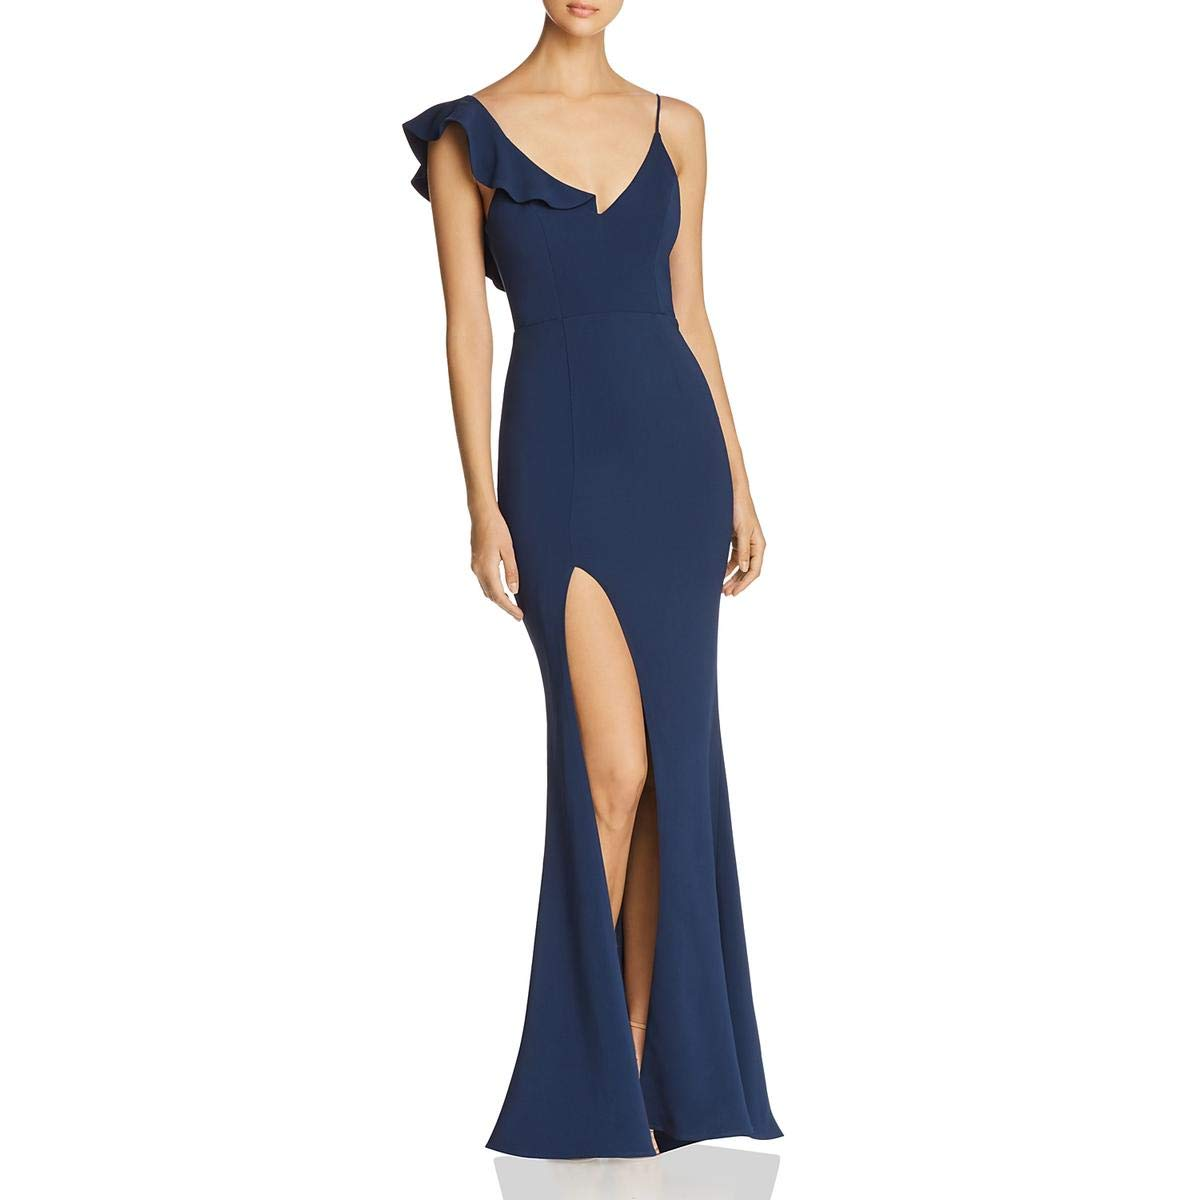 Navy La Maison Talulah Womens Vanity Fair One Shoulder FrontSlit Evening Dress